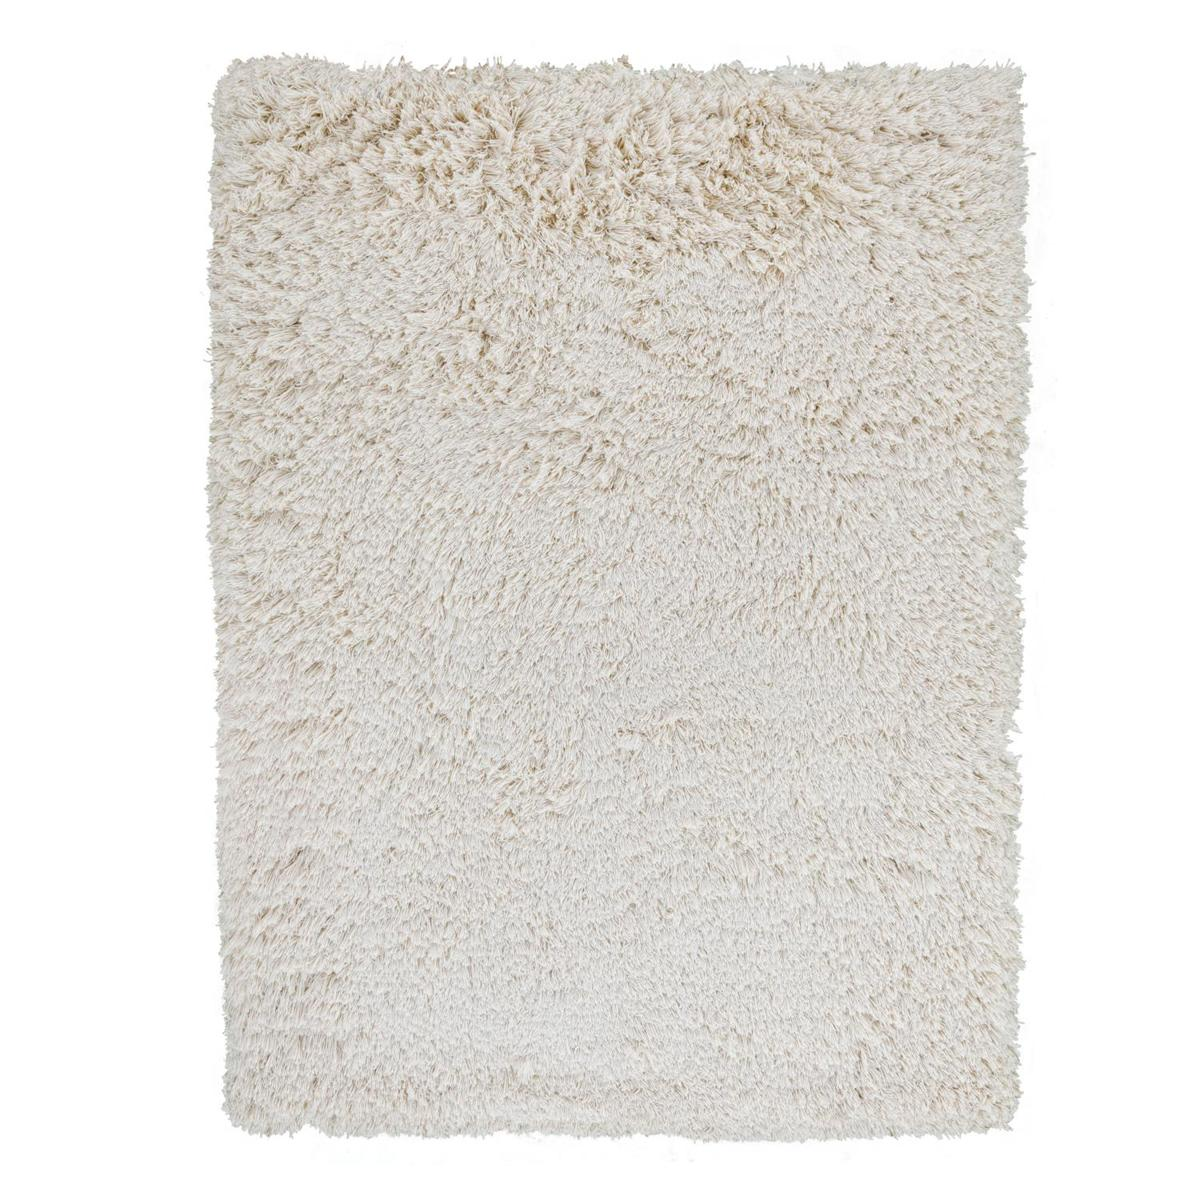 Highlander Shaggy Rug Natural 200x300cm 1